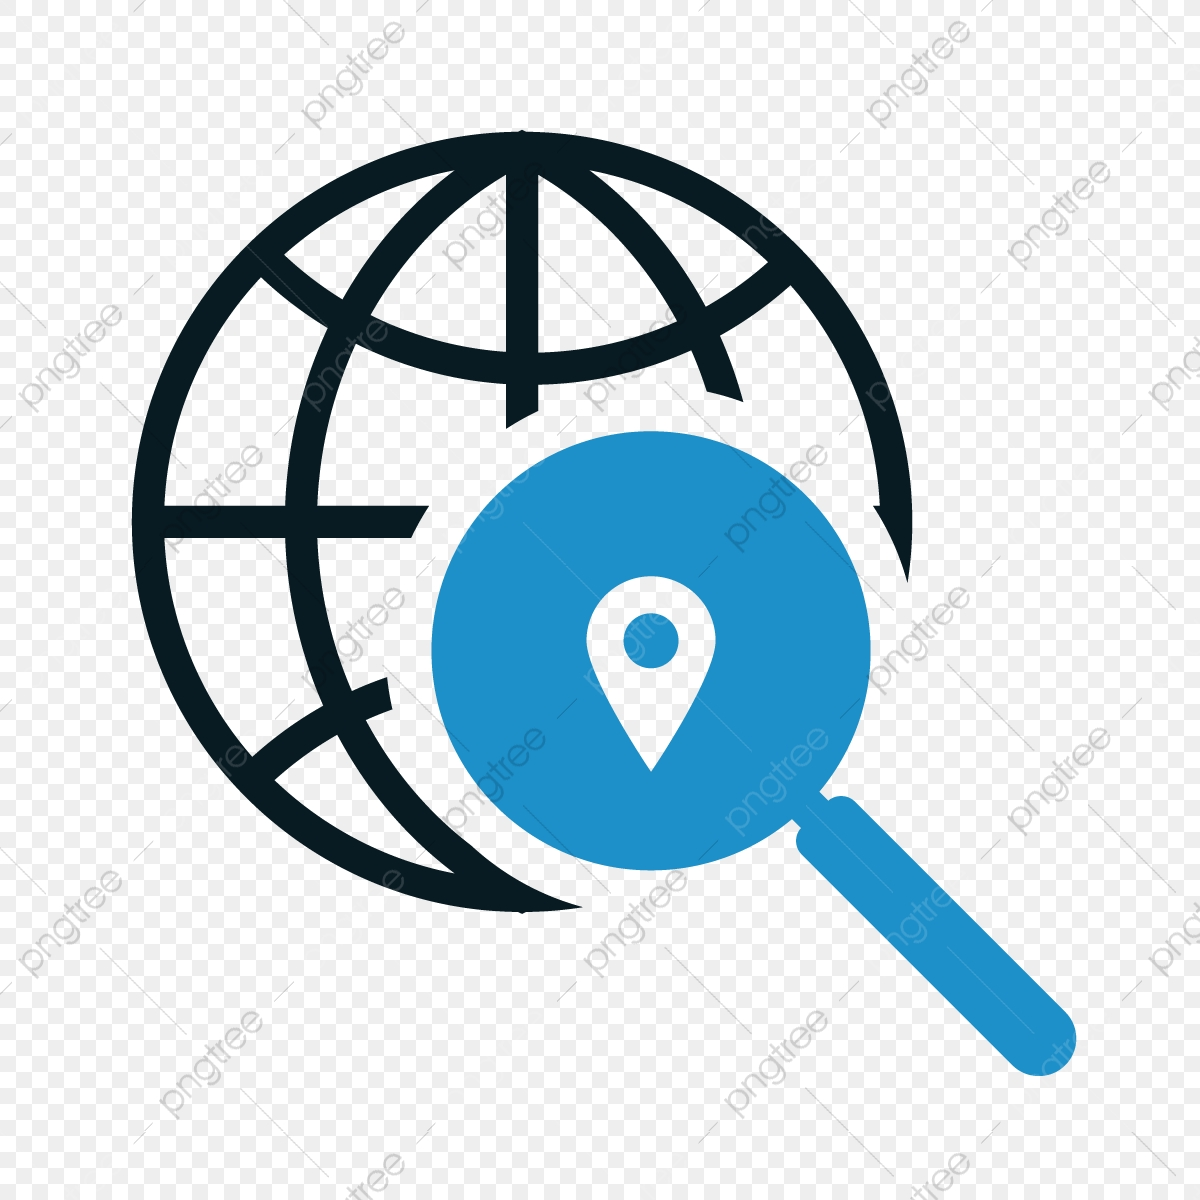 Globe Internet Search Icon Vector Illustration For Web Search Icons Web Icons Internet Icons Png And Vector With Transparent Background For Free Download